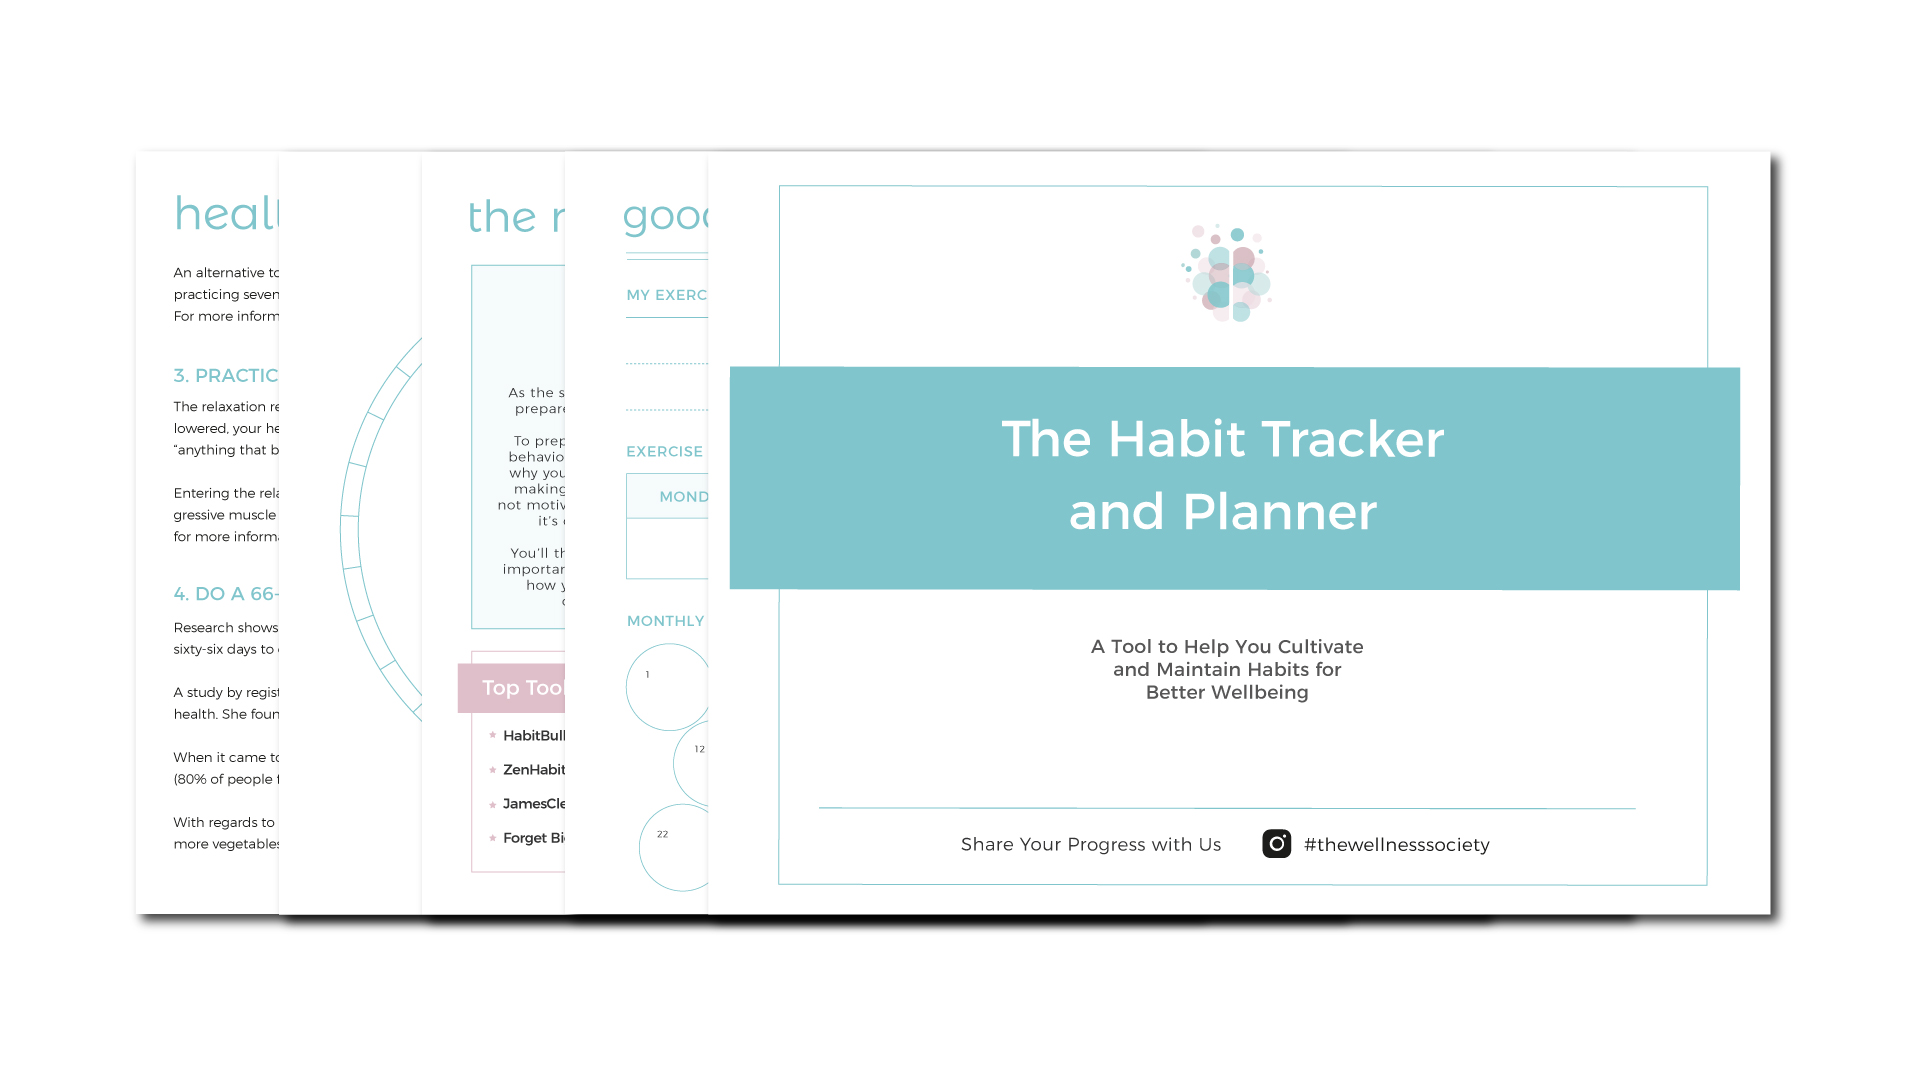 The Habit Tracker and Planner